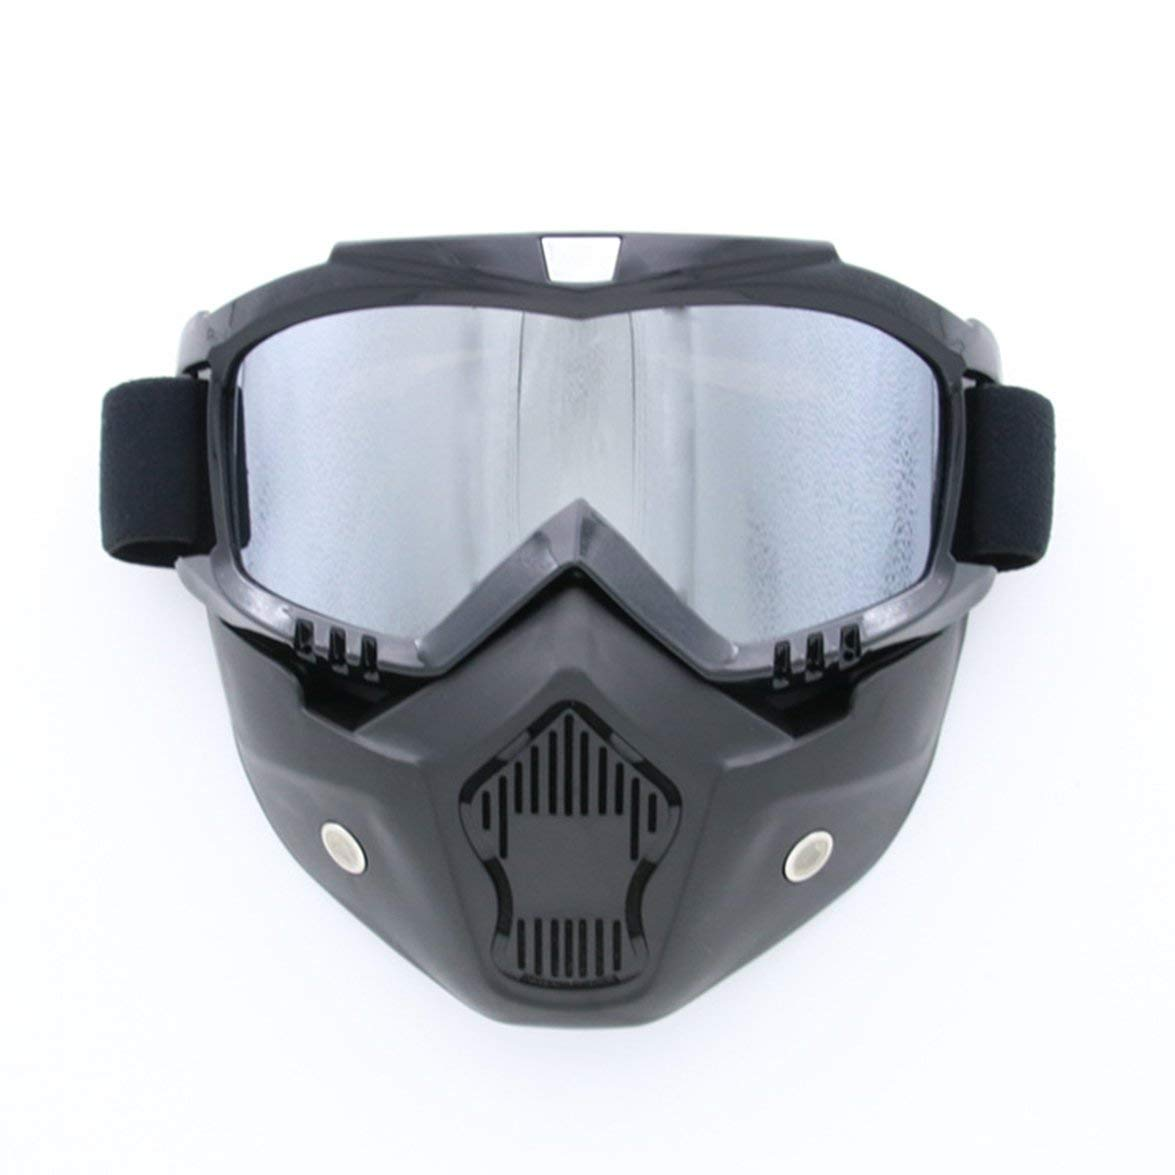 Kongqiabona Completely Framed Mask Skiing Glasses Cycling Glasses Windproof Goggles Breathable Glasses Removable Mask for Outdoor Sports